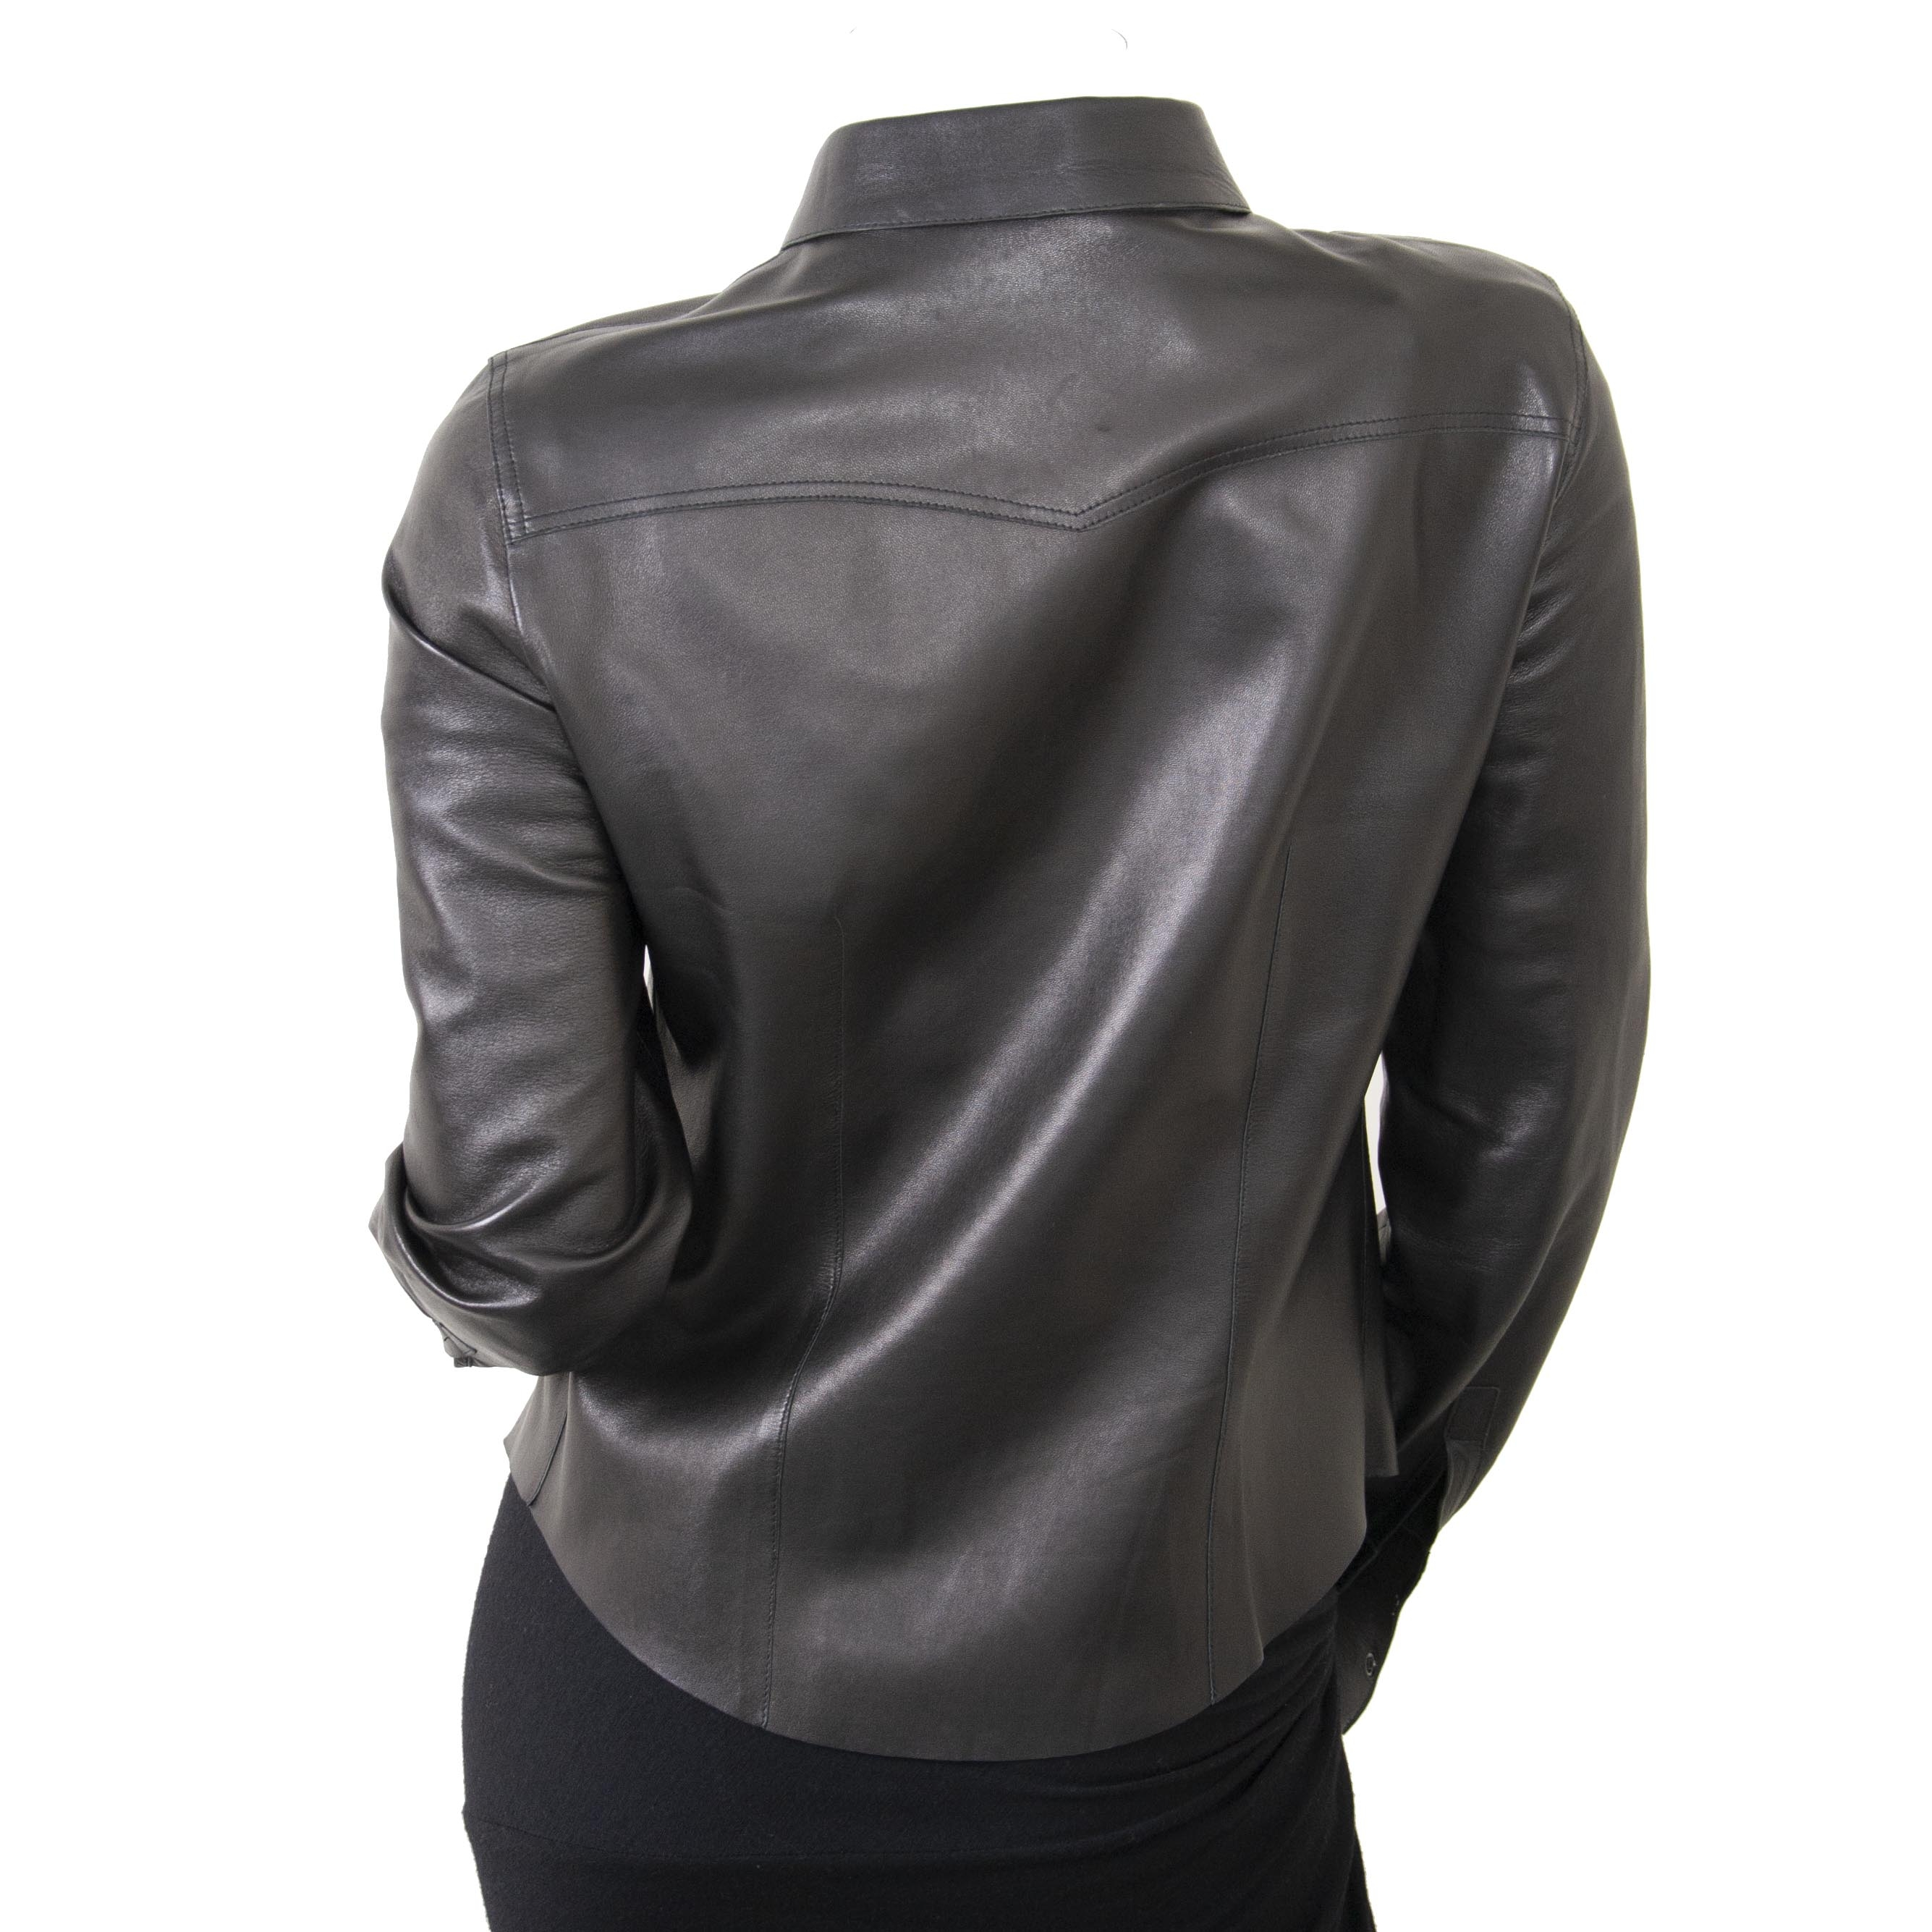 Gucci Black Leather Shirt - size 44